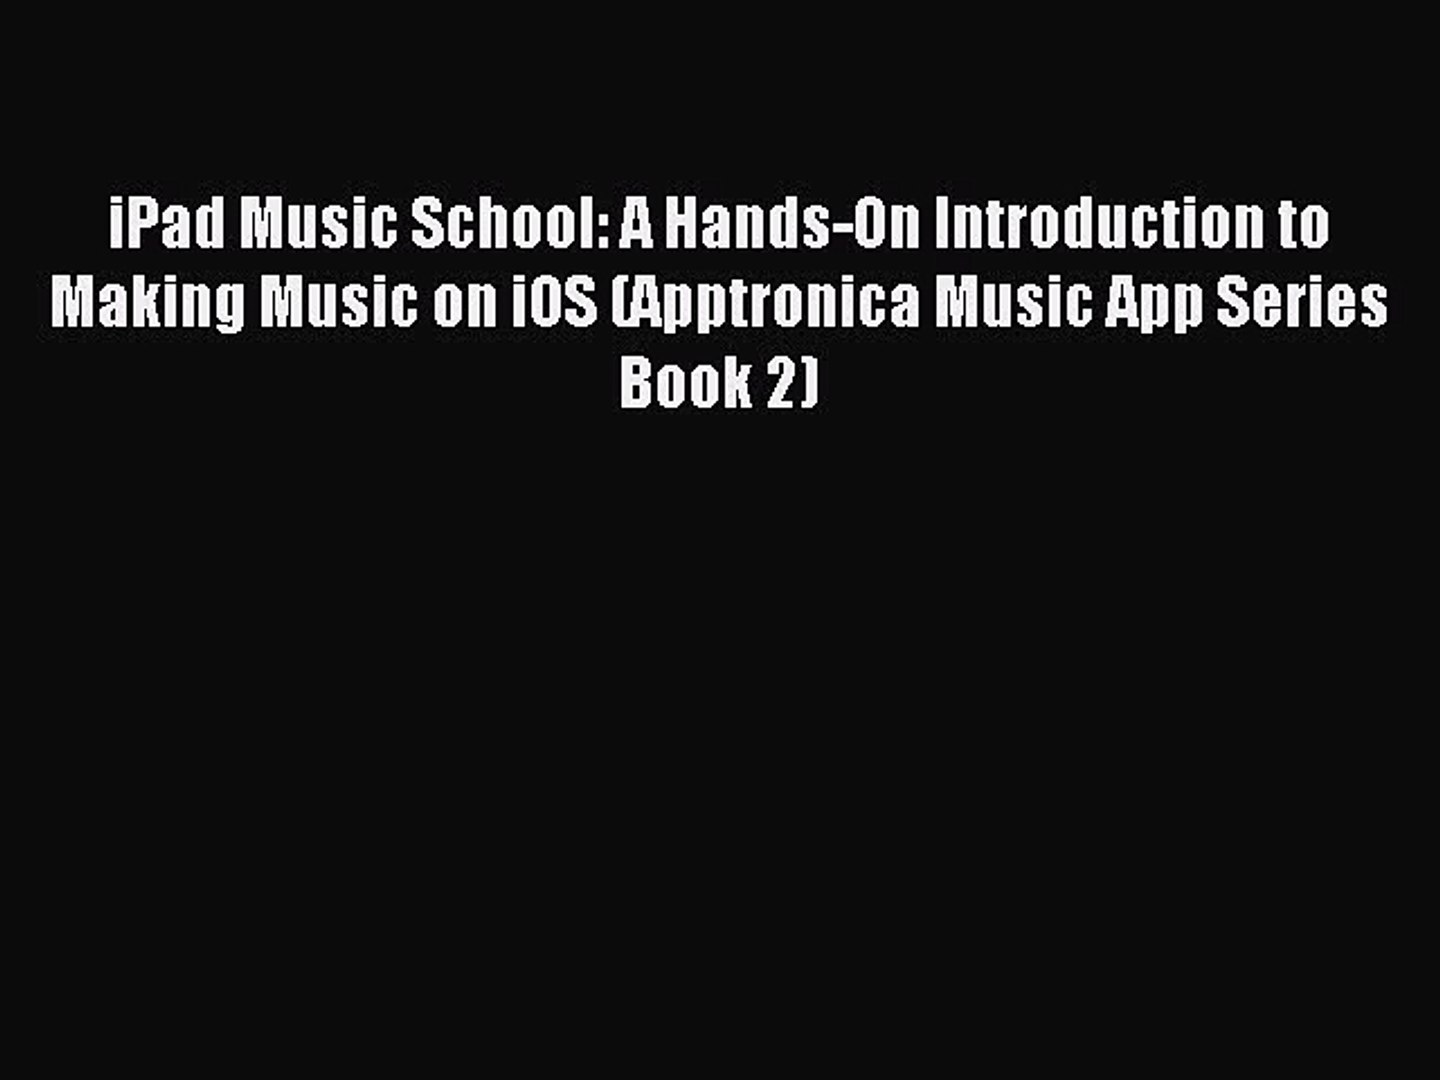 Download iPad Music School: A Hands-On Introduction to Making Music on iOS (Apptronica Music